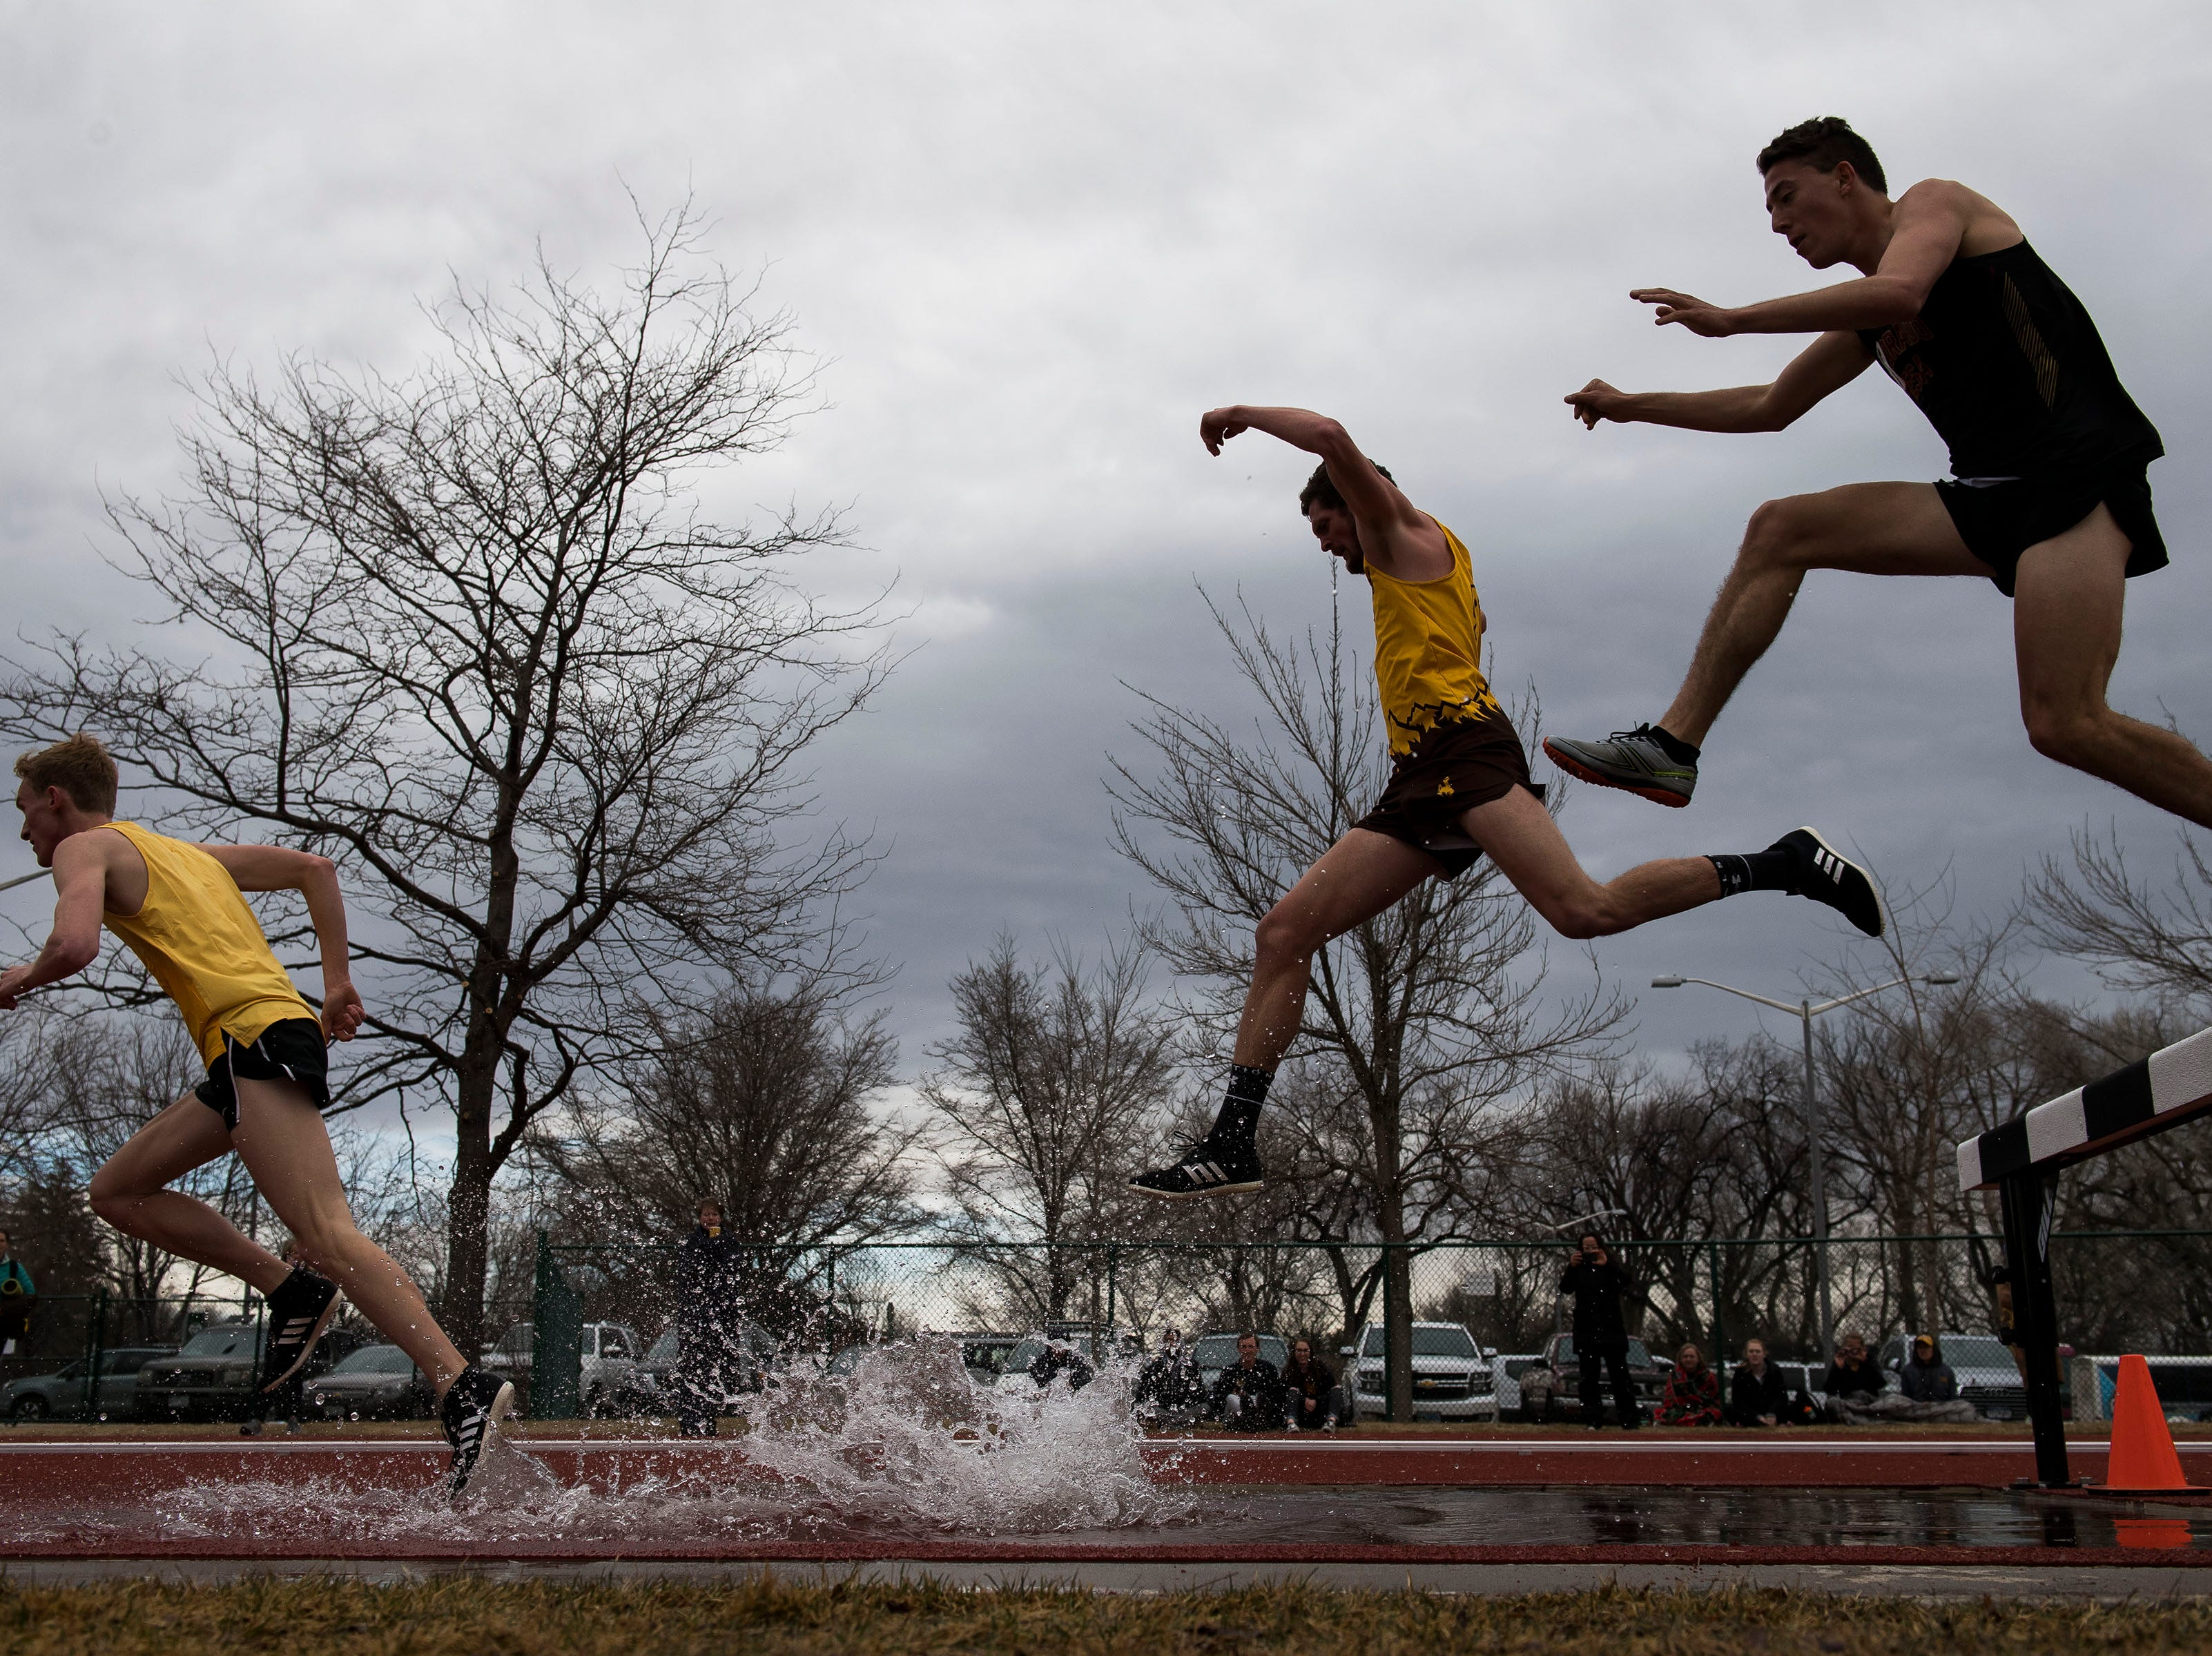 Runners from the University of Wyoming and Colorado Mesa compete I the mens 3000-meter steeple chase on Saturday, March 23, 2019, at the Jack Christiansen Memorial Track in Fort Collins, Colo.